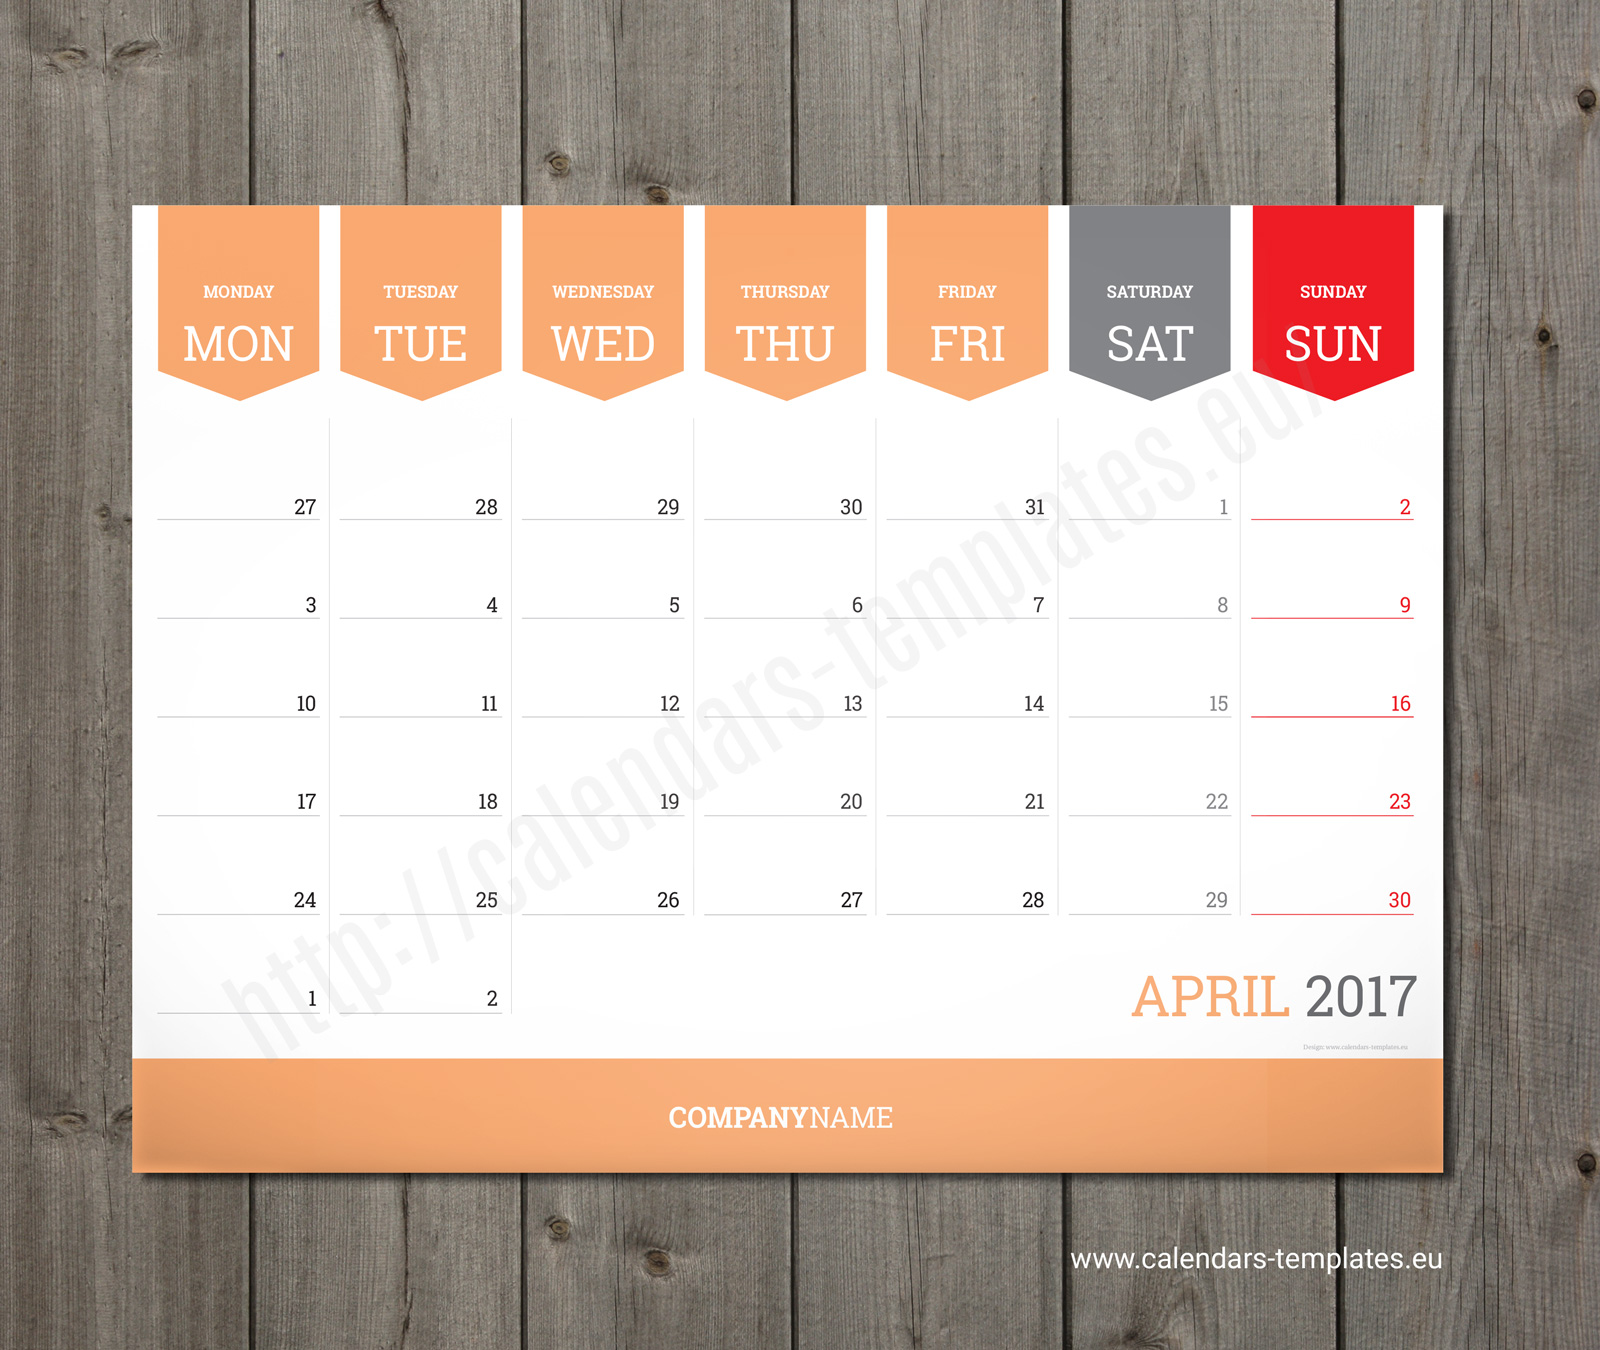 Daily Calendar Design : Monthly calendar planner wall or table pad